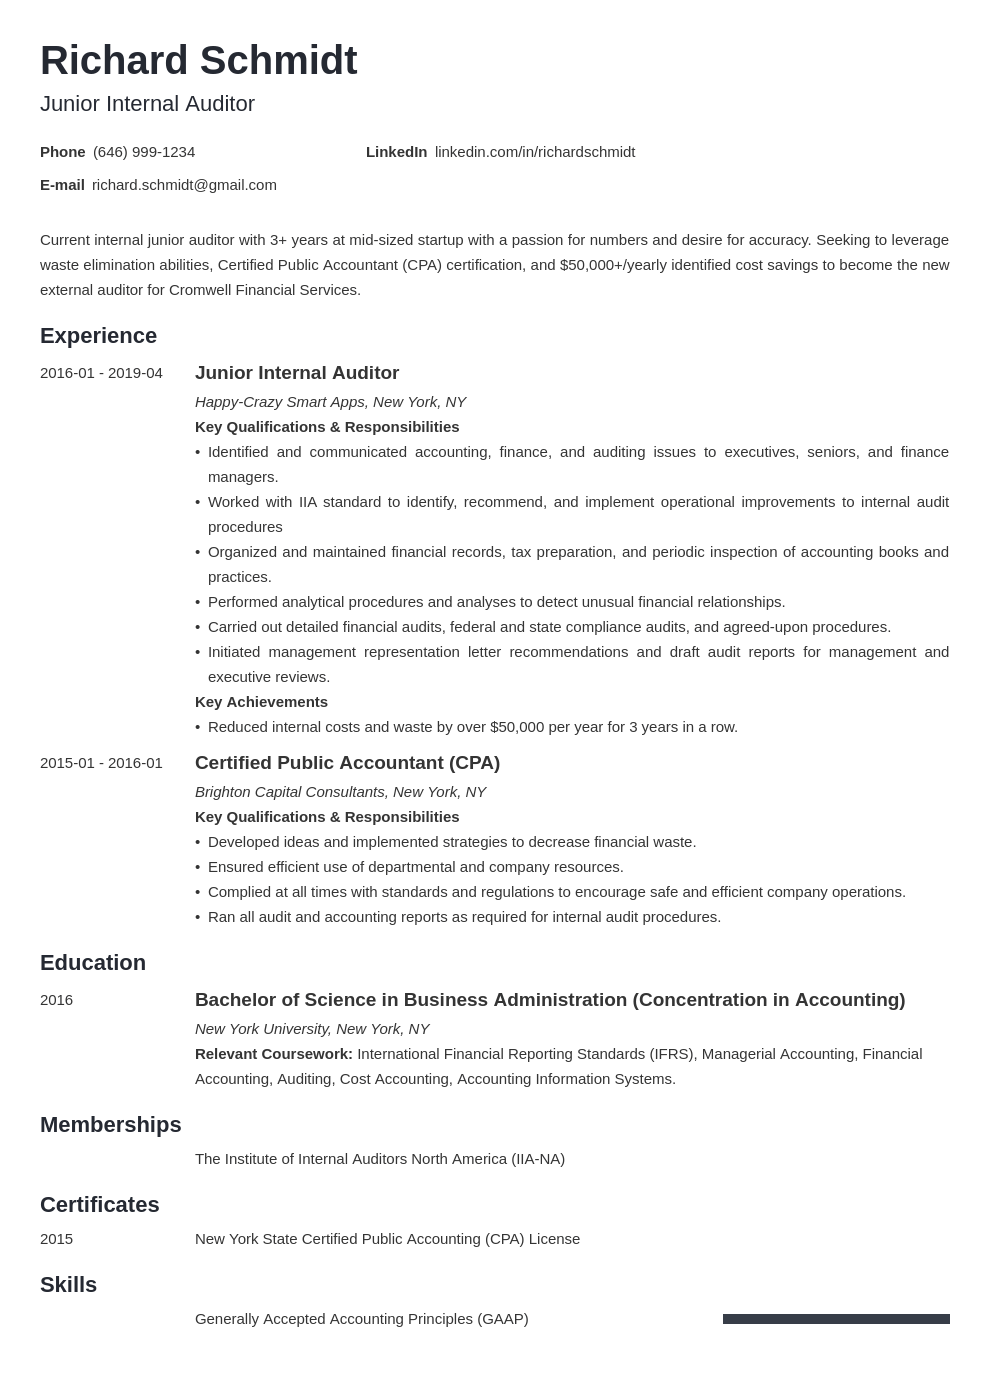 Auditor Resume Example Template Minimo In 2020 Resume Examples Job Resume Examples Resume